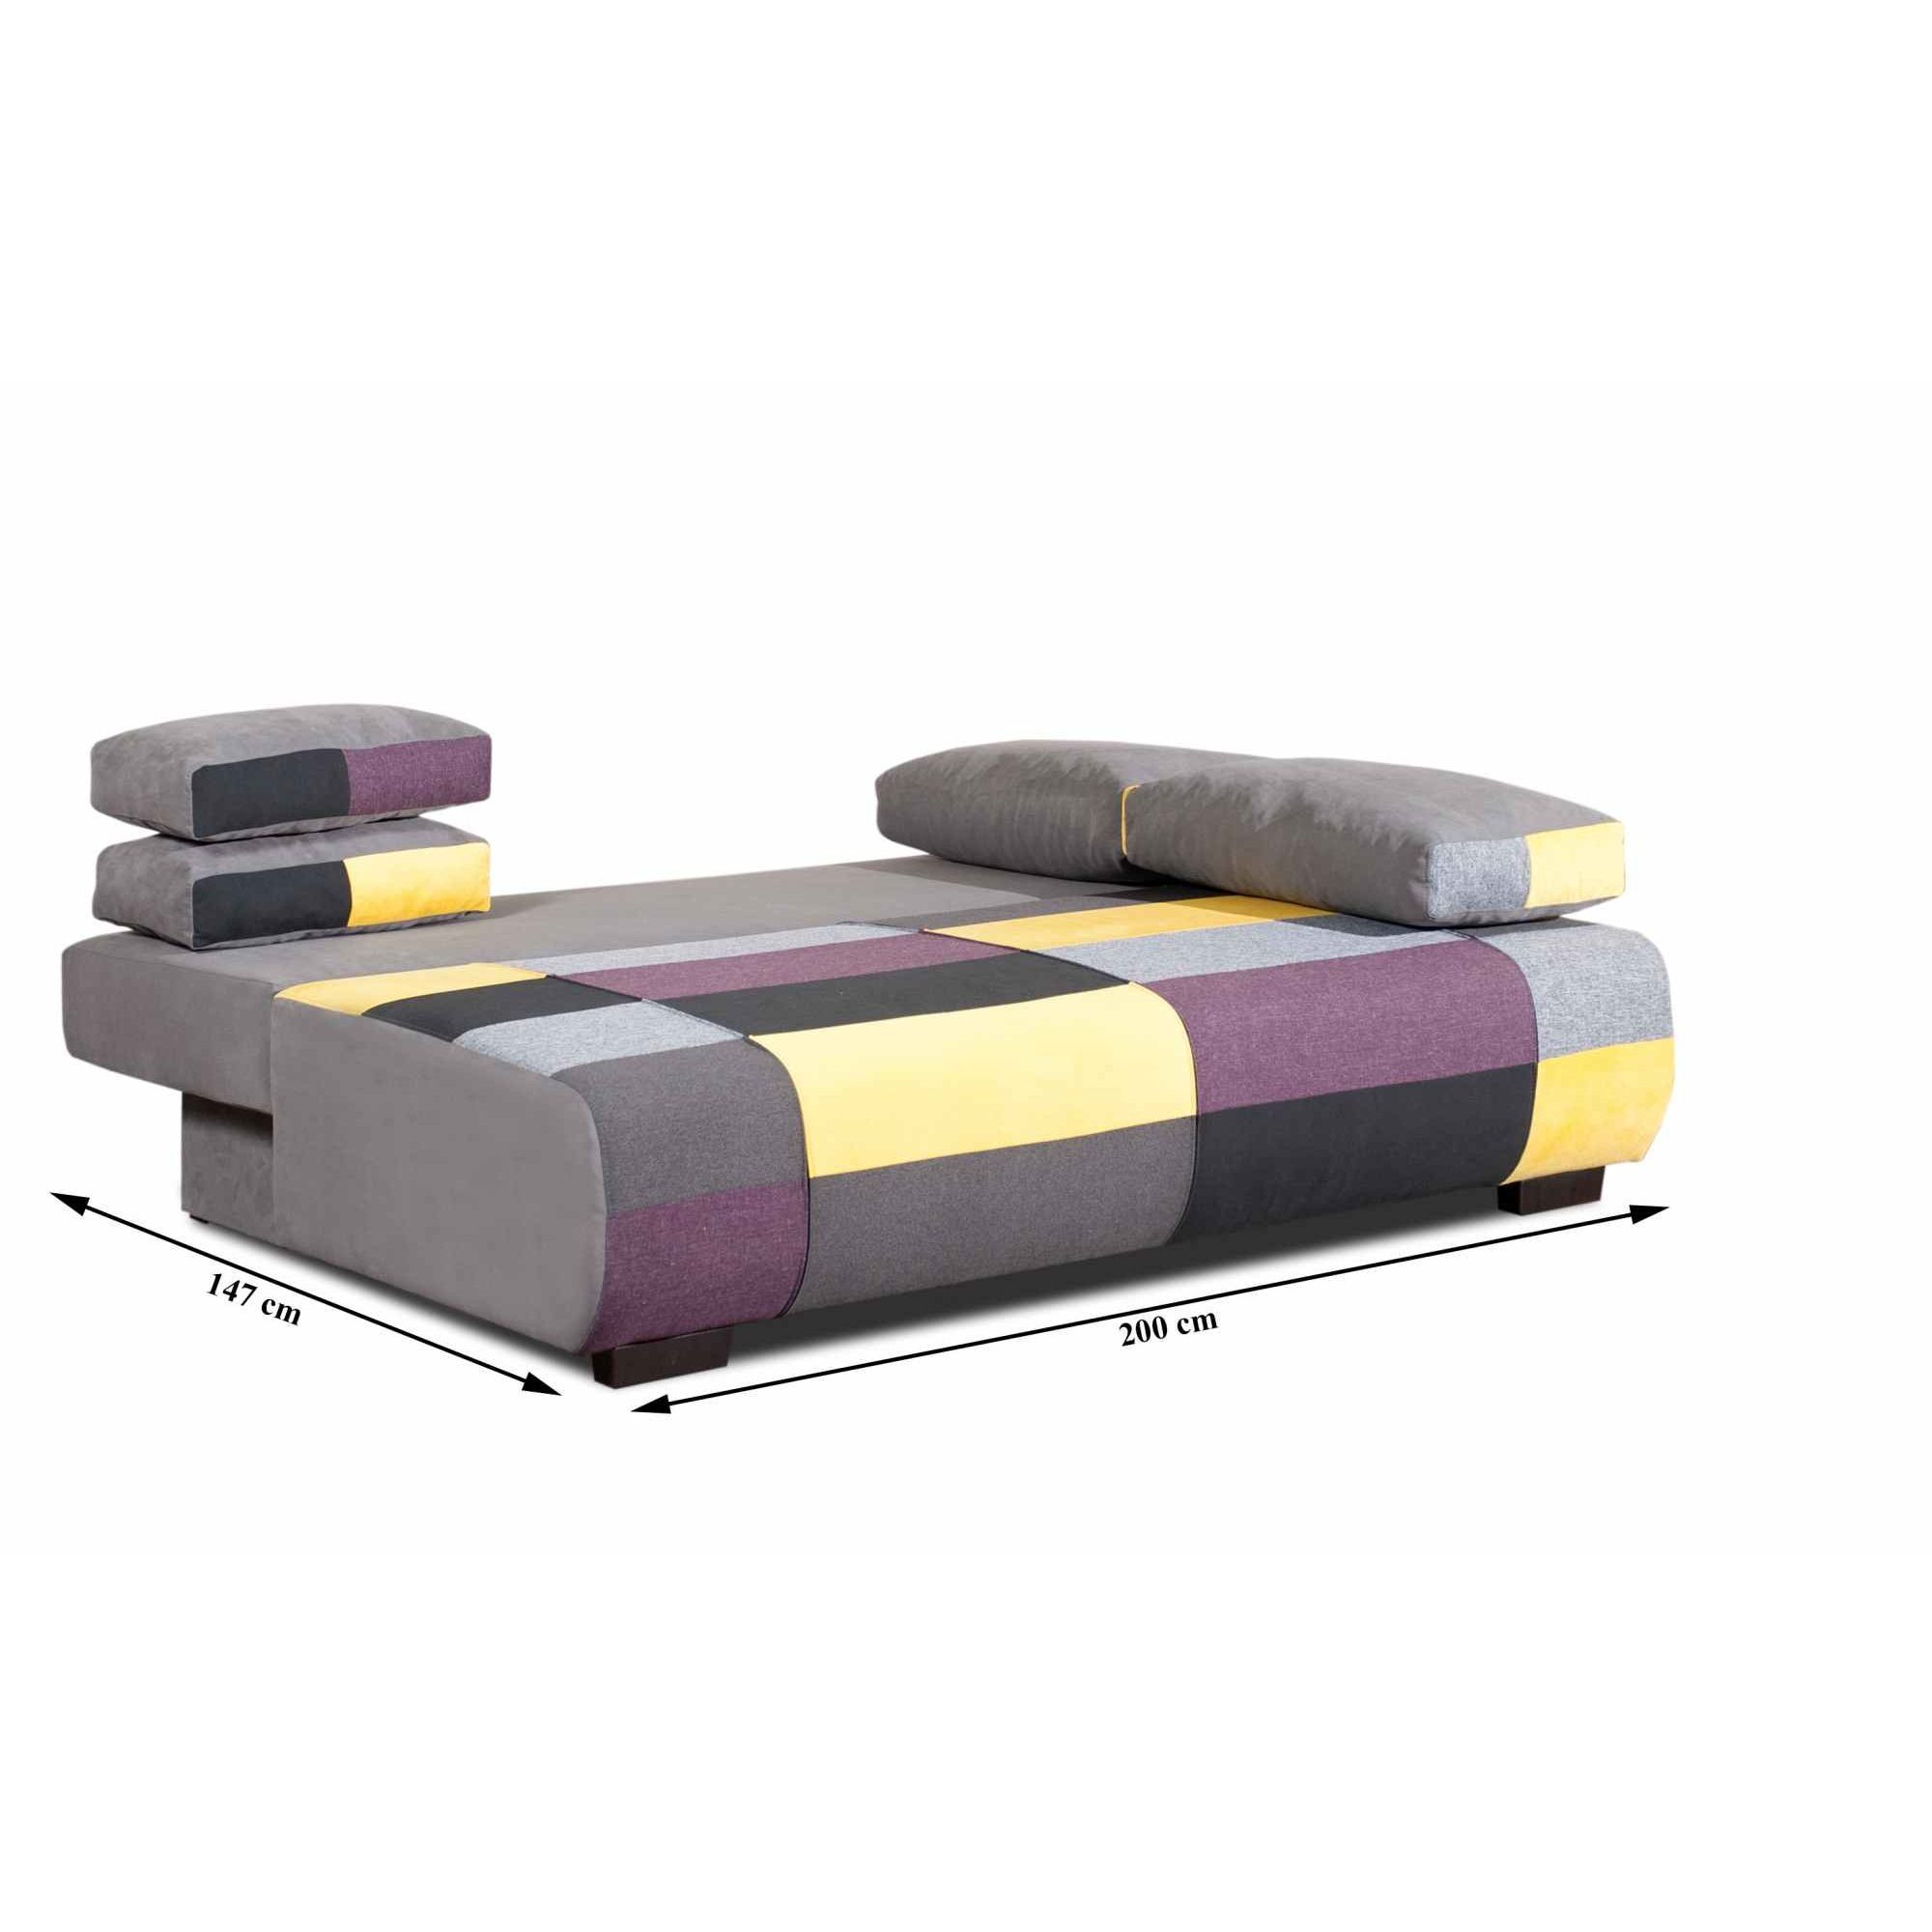 deco in paris canape 3 places convertible en tissu jaune. Black Bedroom Furniture Sets. Home Design Ideas